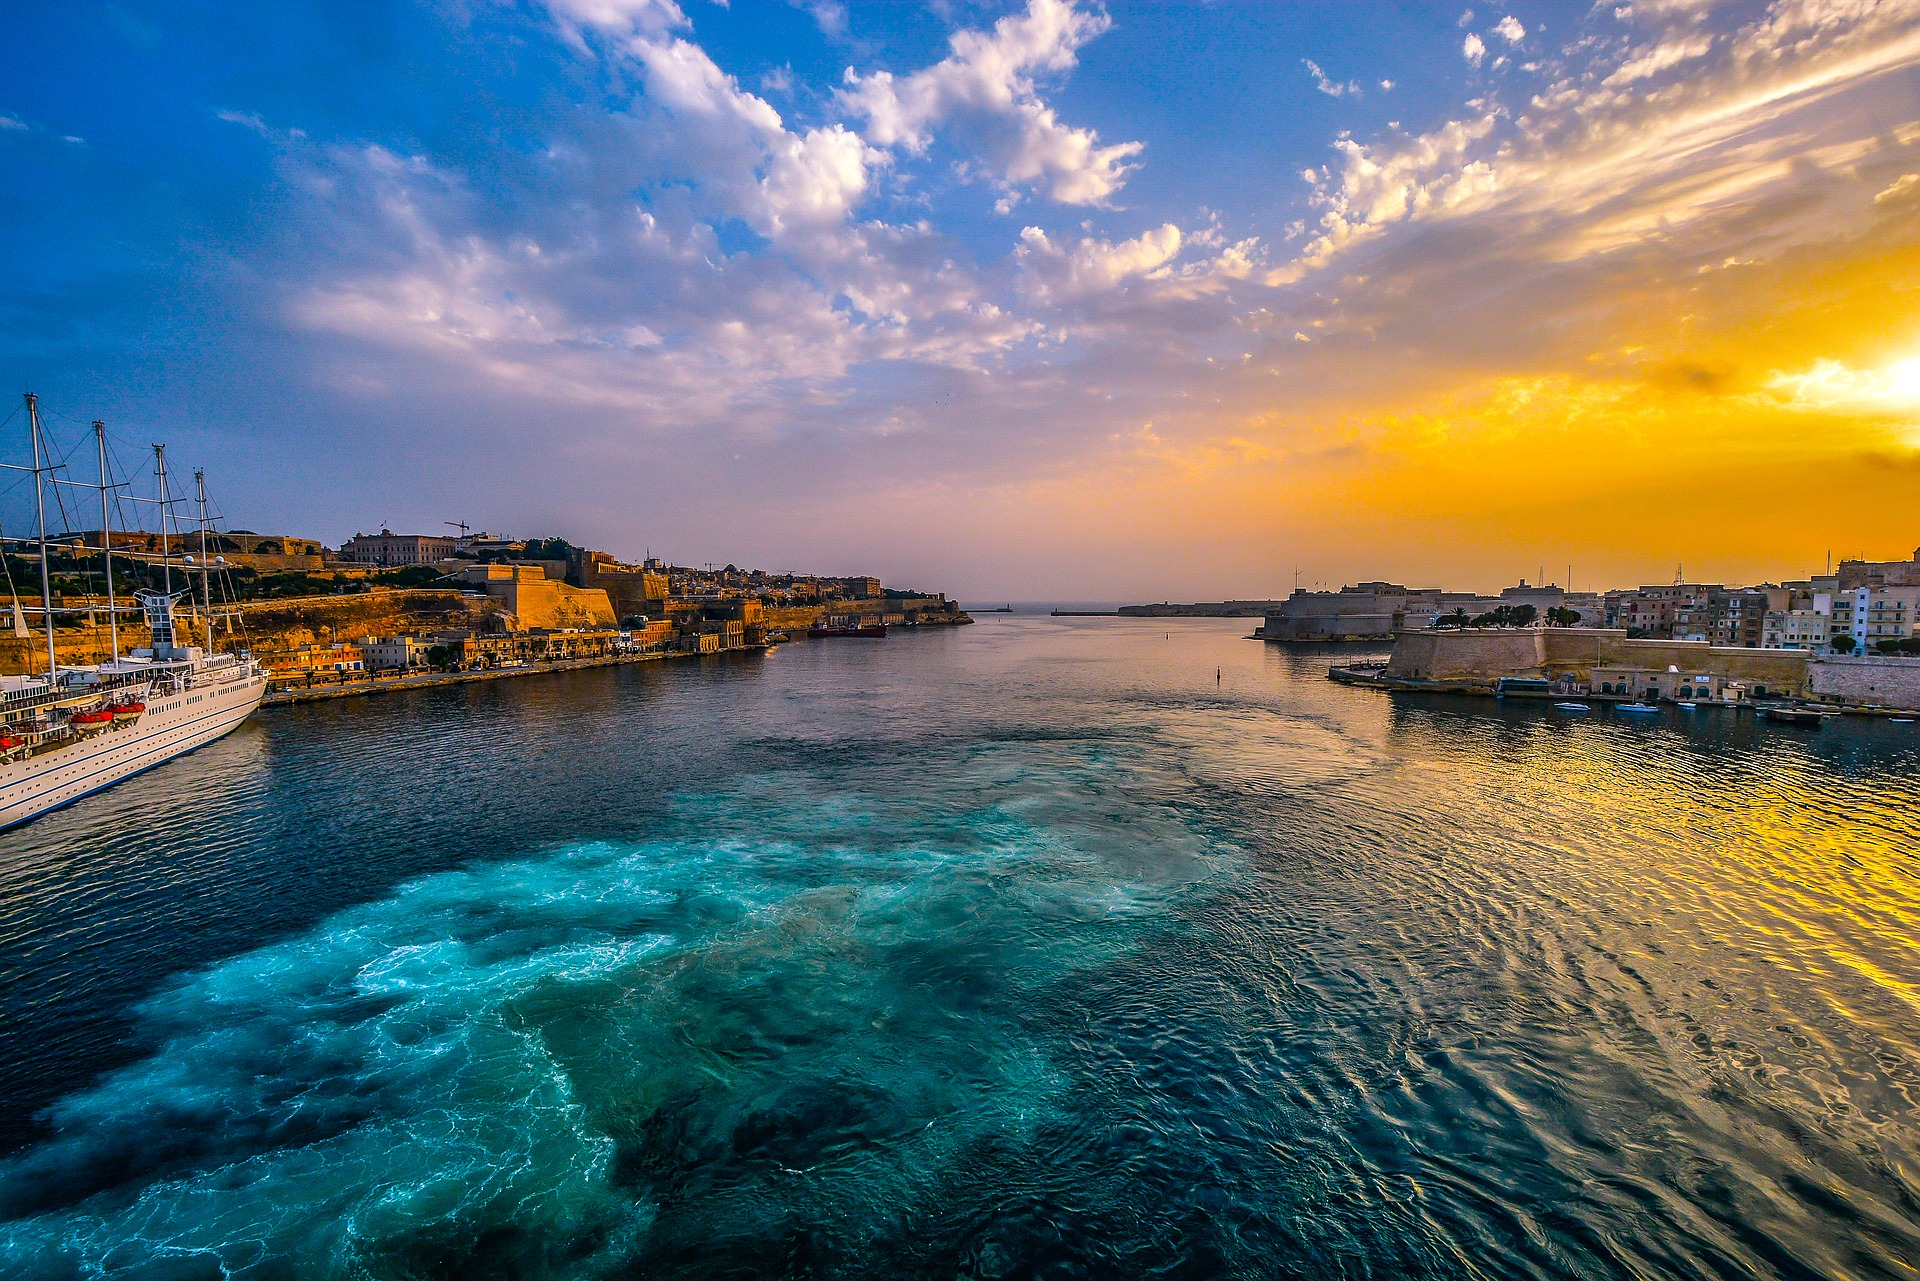 Sunset in Malta